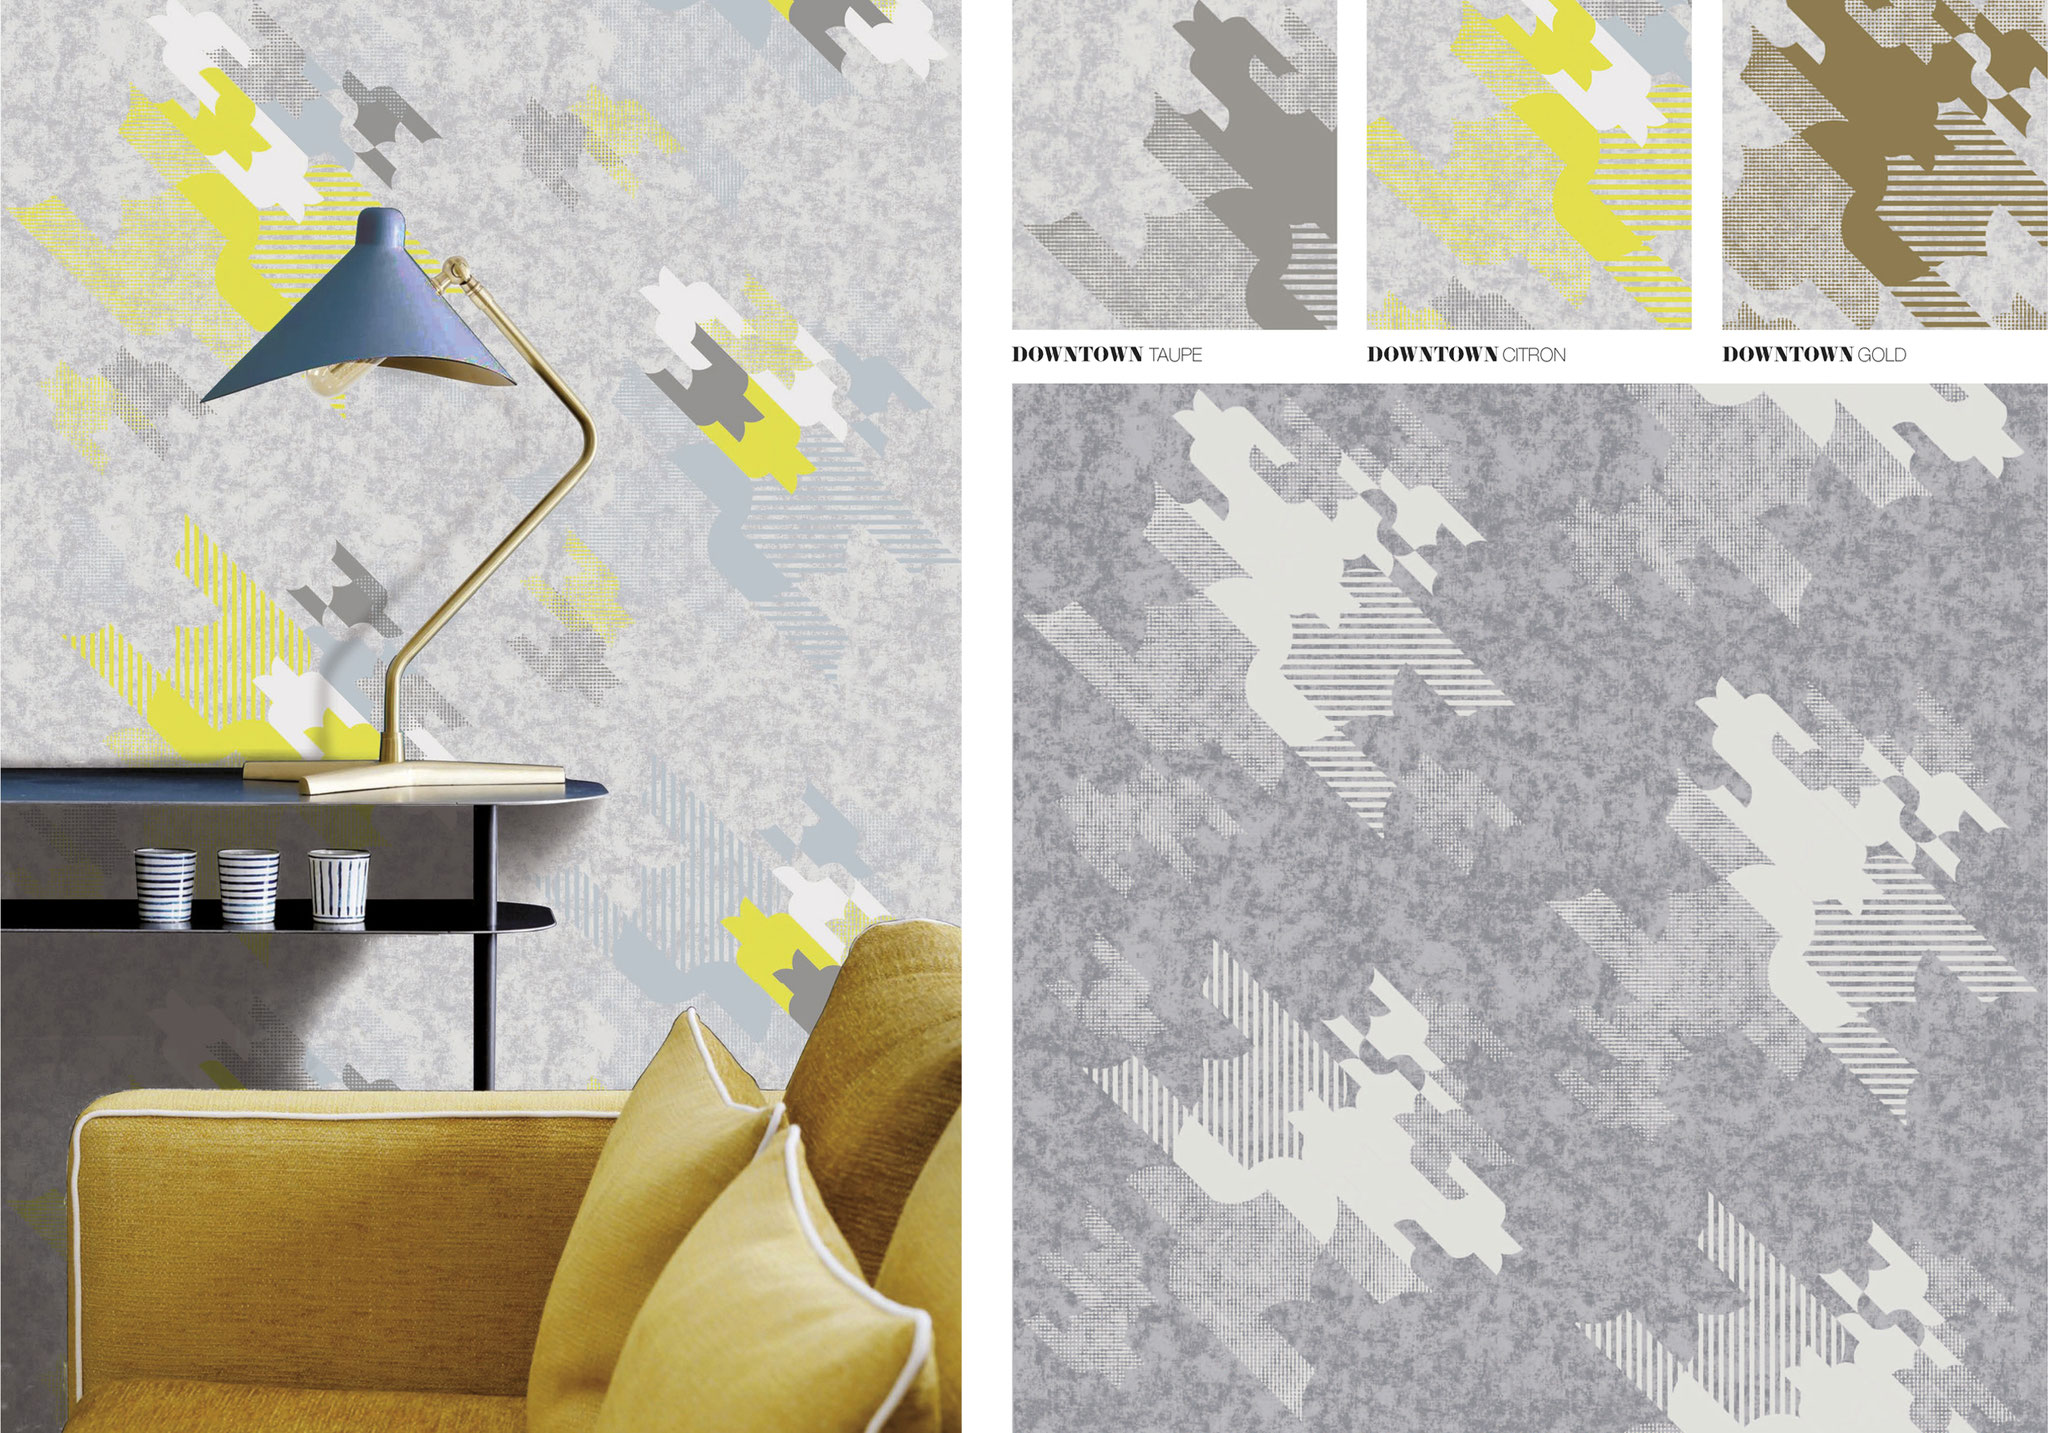 DOWNTOWN - Wallpaper - Surface pattern design - GRAHAM & BROWN -Design competition